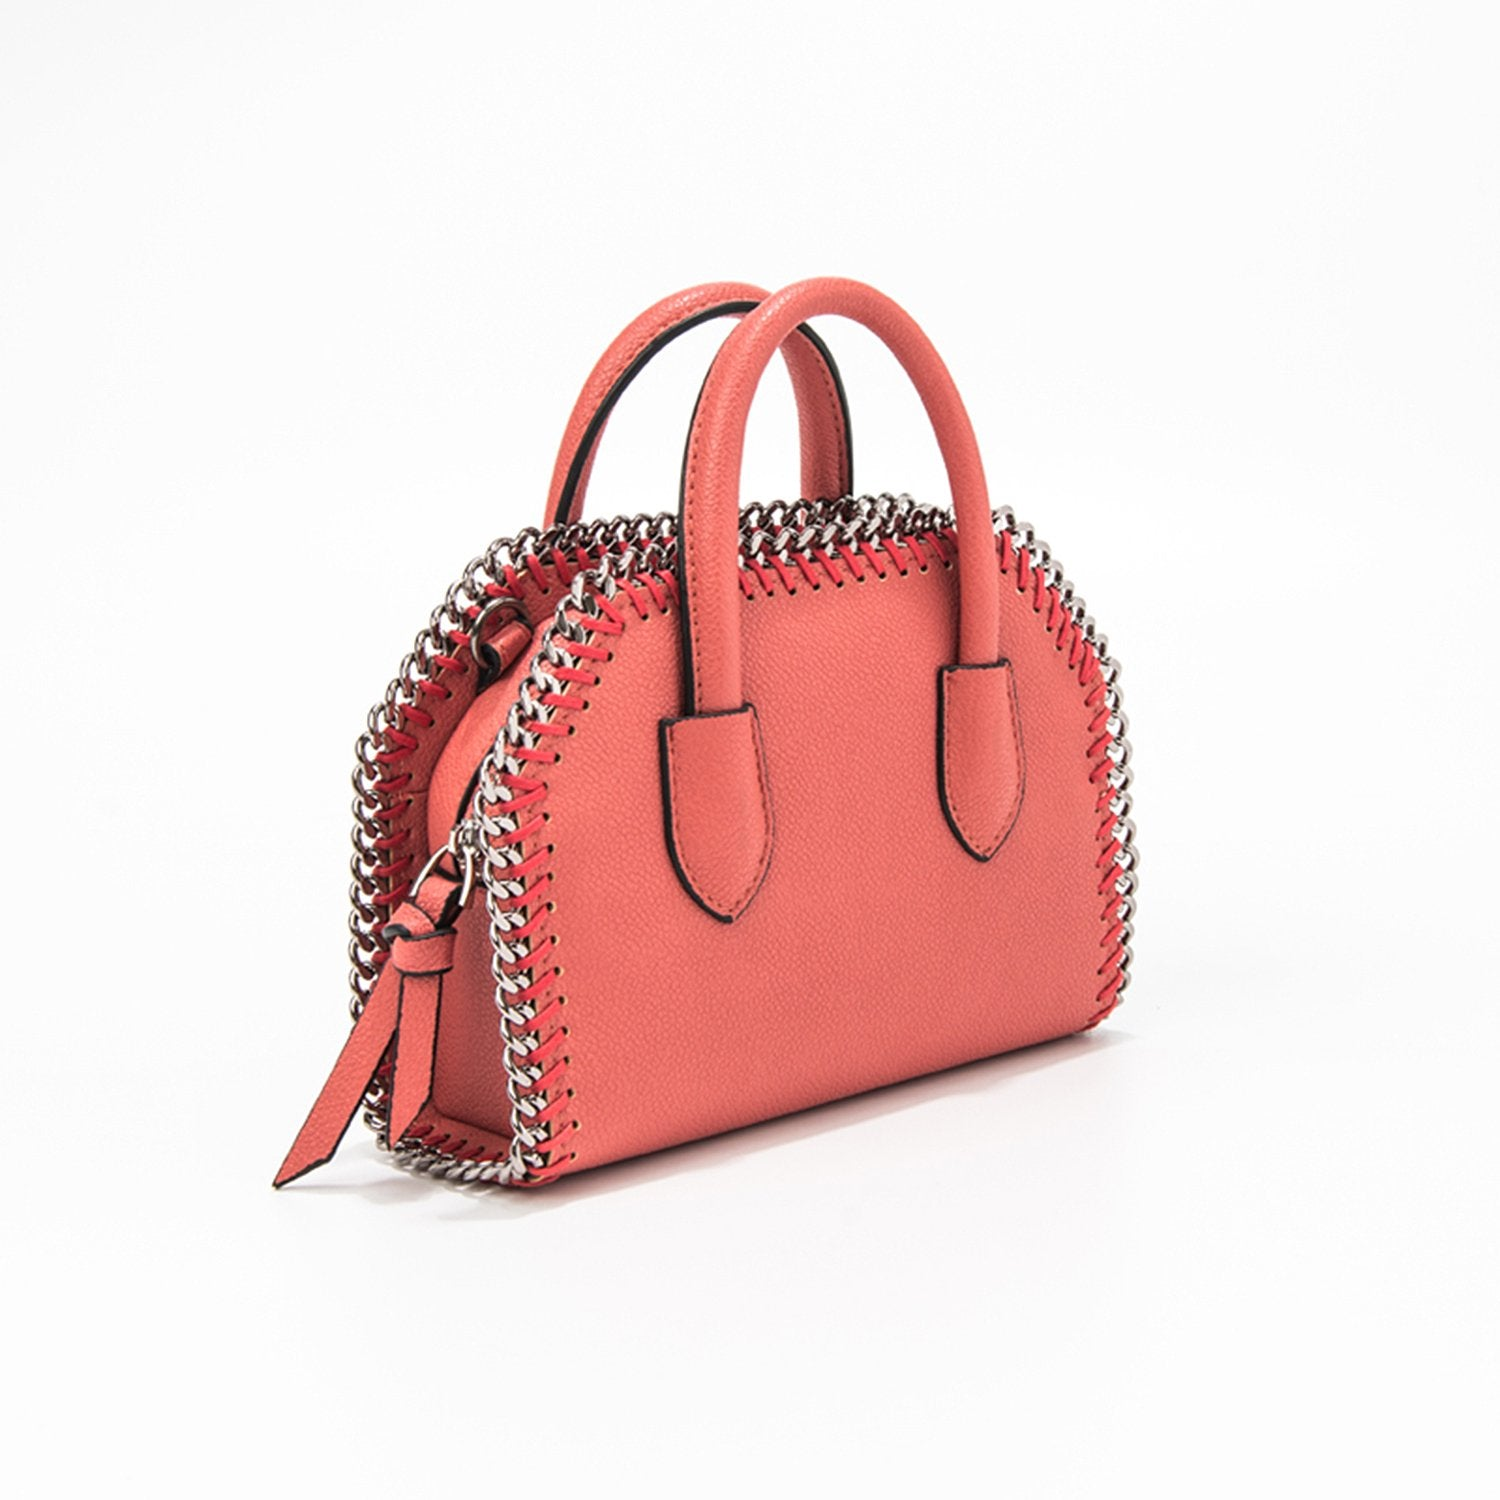 Small Size Simple Fashion Lychee Pattern Handbag